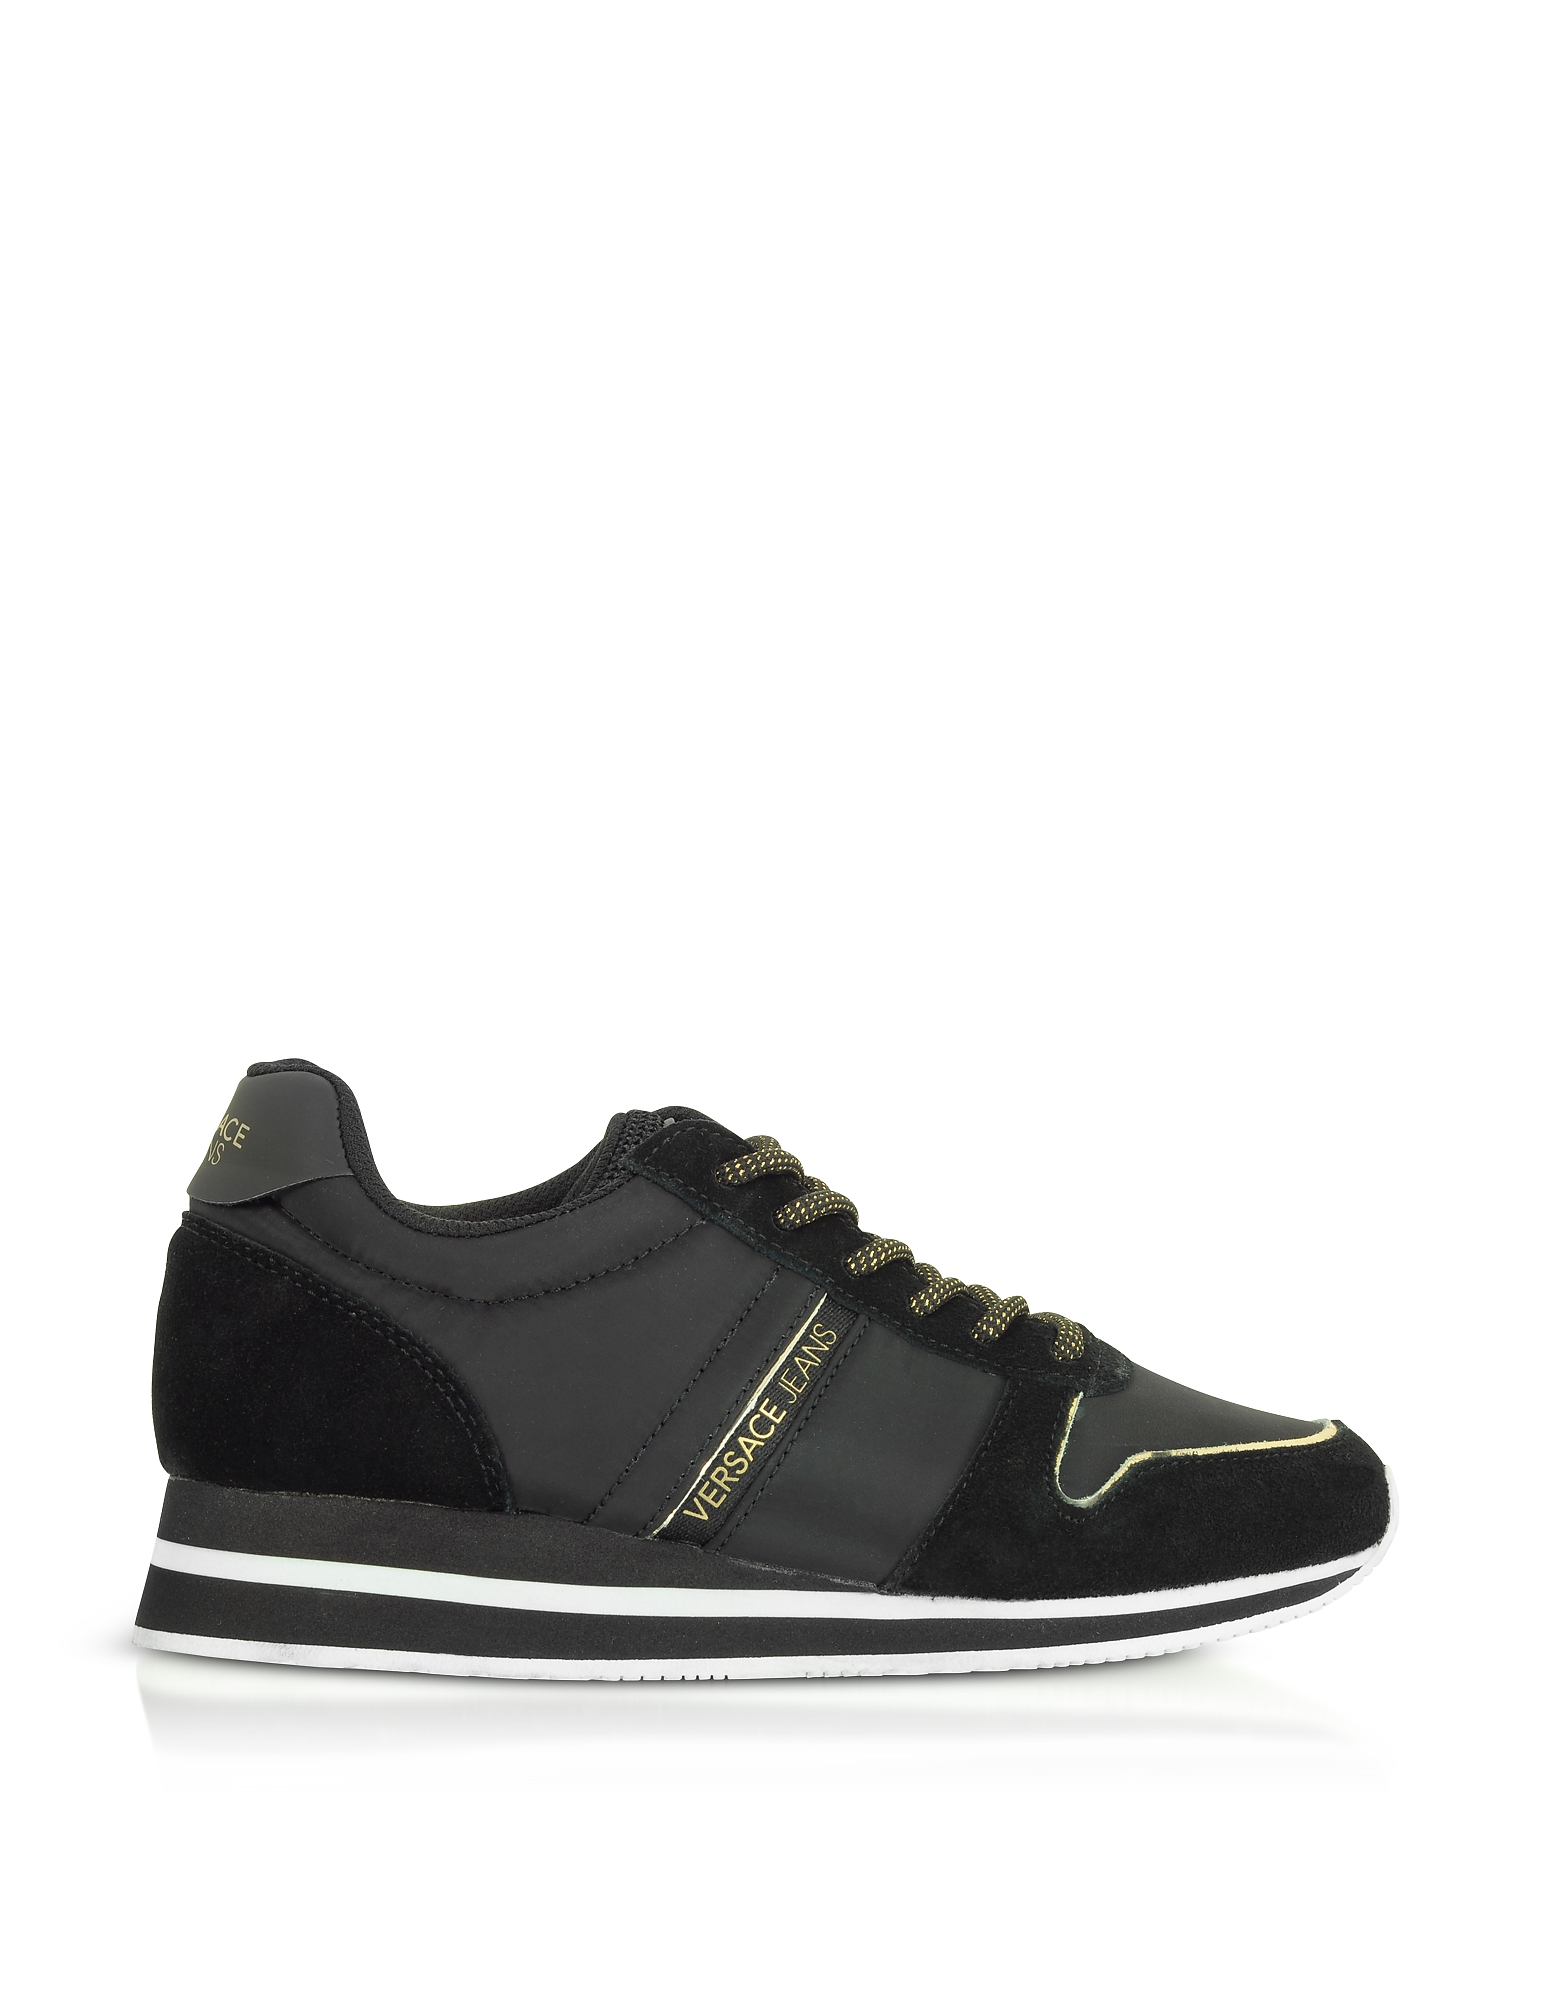 Versace Jeans Designer Shoes, Stella Black Nylon & Suede Women's Sneakers